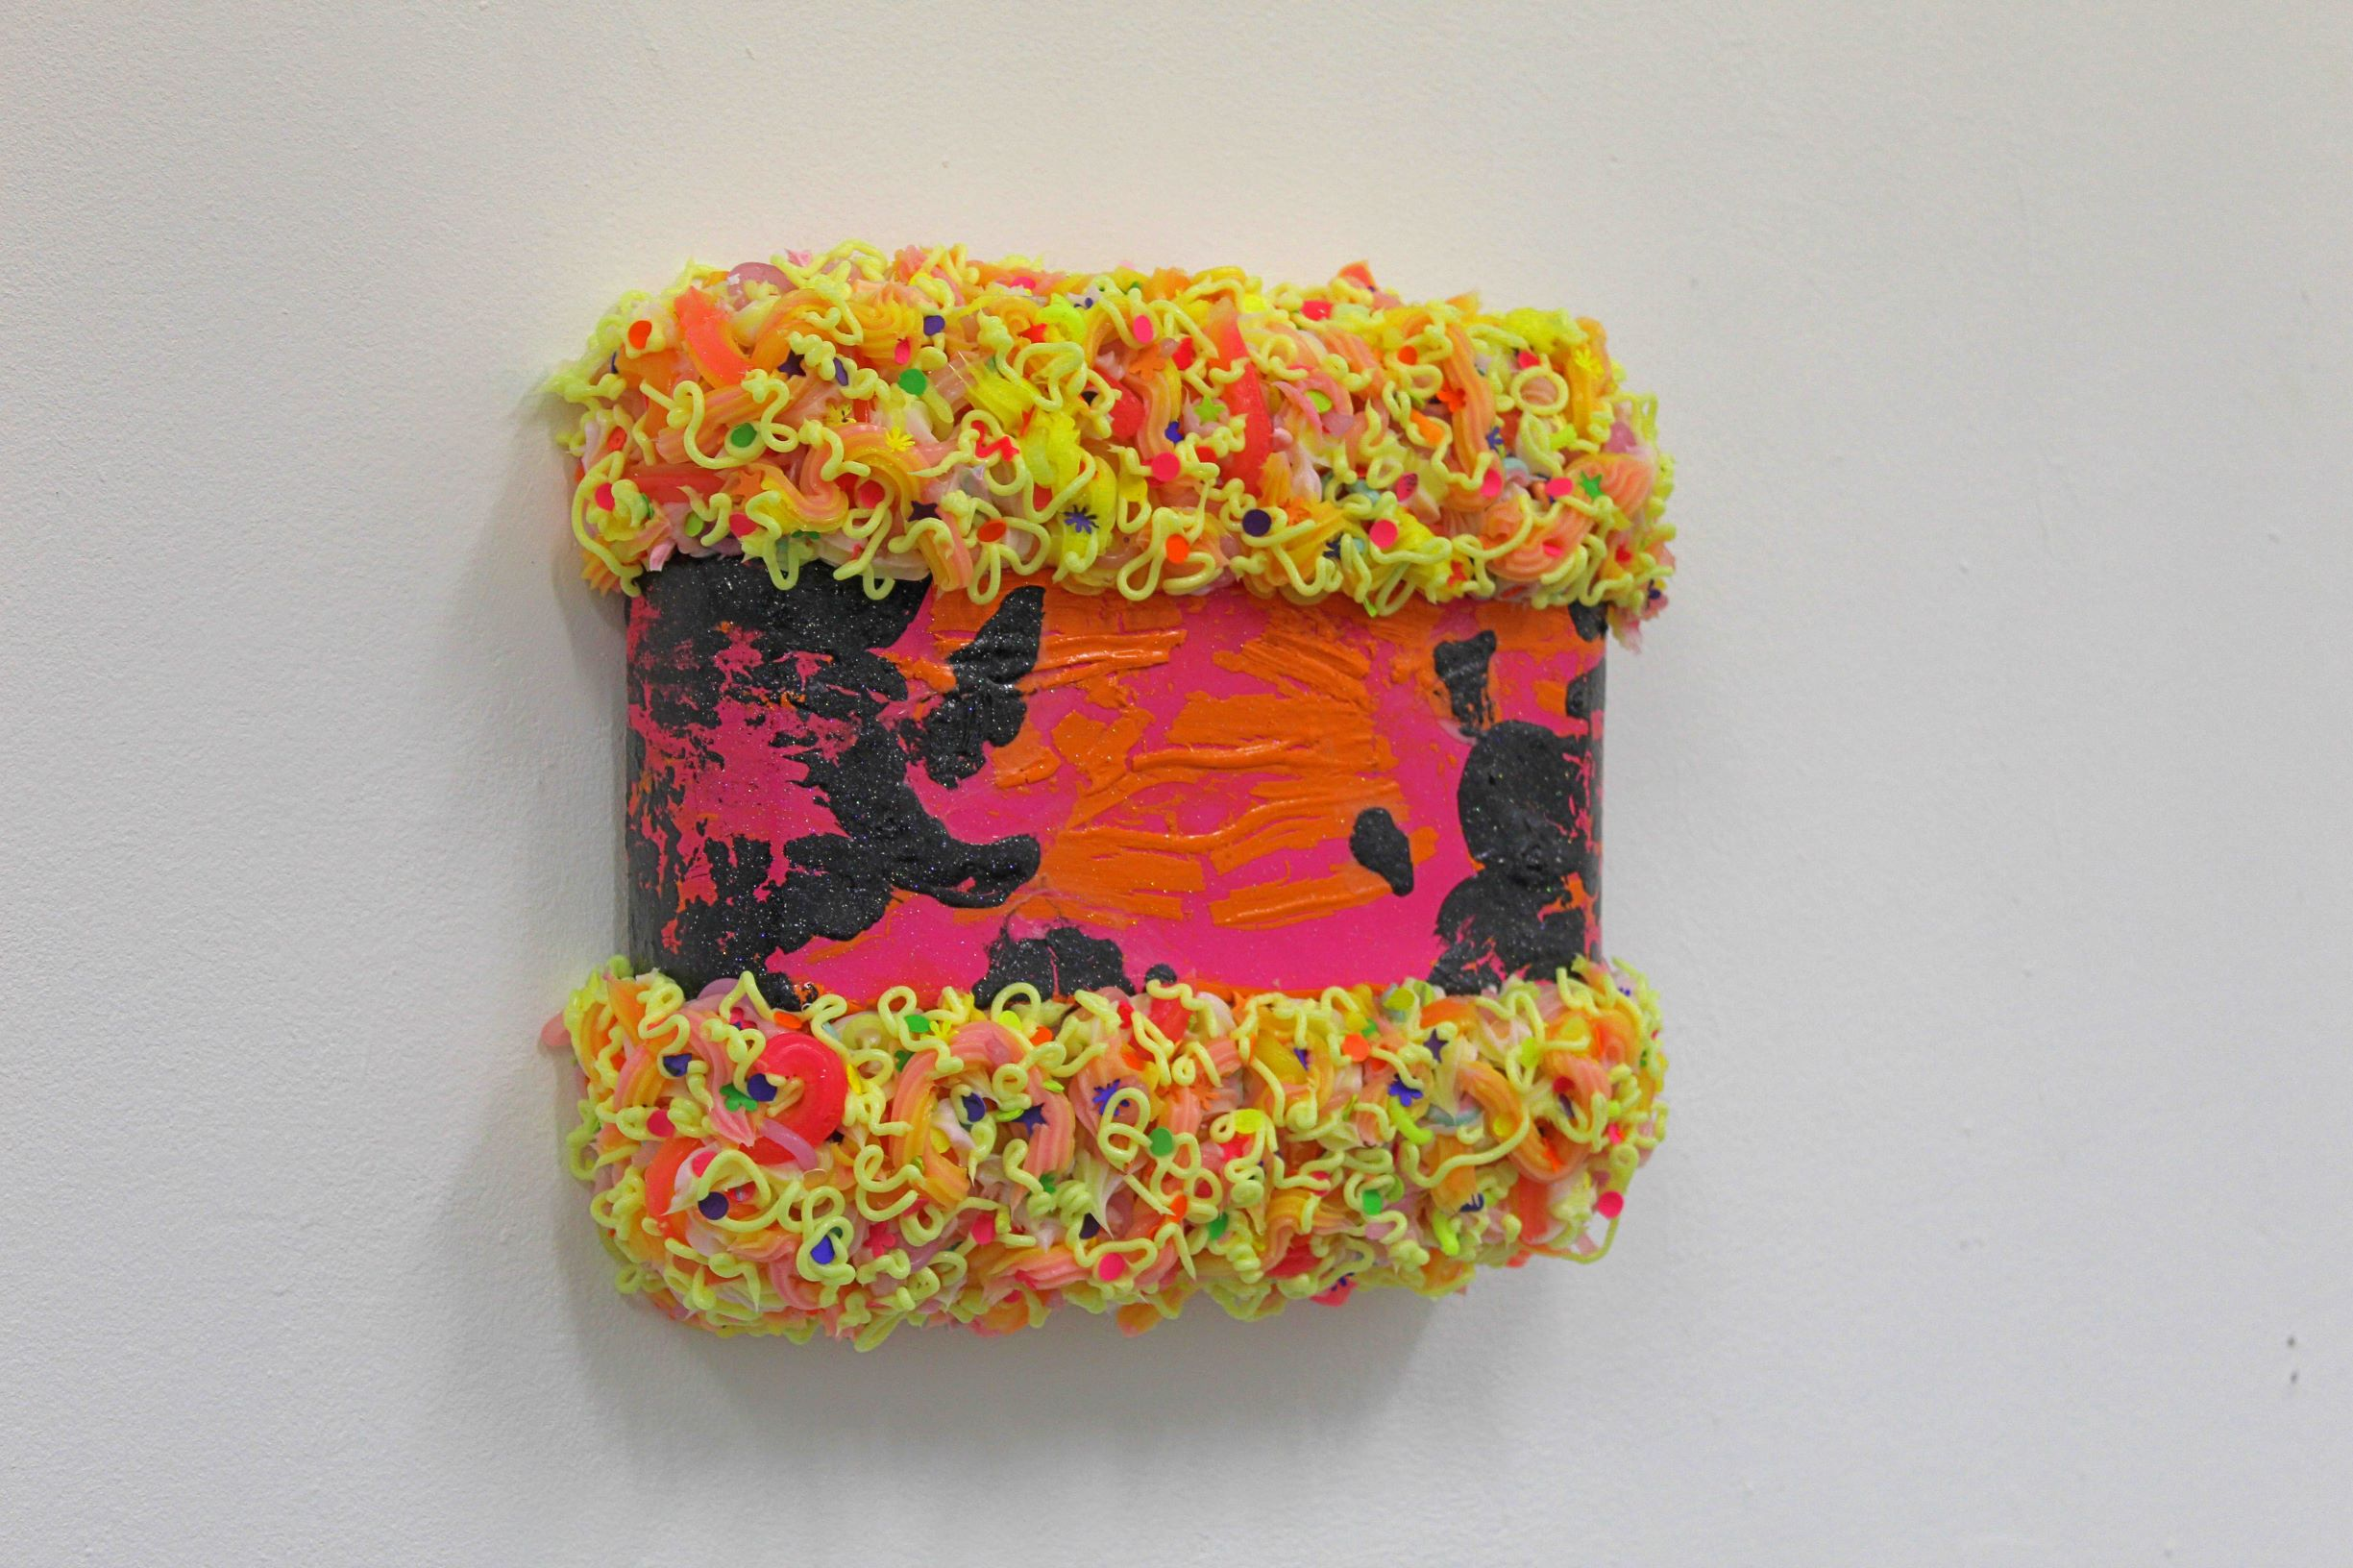 Ciaran Bowen, Sweet Sorrow, Oil, Silicone, Spray Paint, Paint Skins, Canvas on Expanding Foam, 2020-Nua-CollectiveCiaran Bowen, Sweet Sorrow, Oil, Silicone, Spray Paint, Paint Skins, Canvas on Expanding Foam, 2020-Nua-Collective